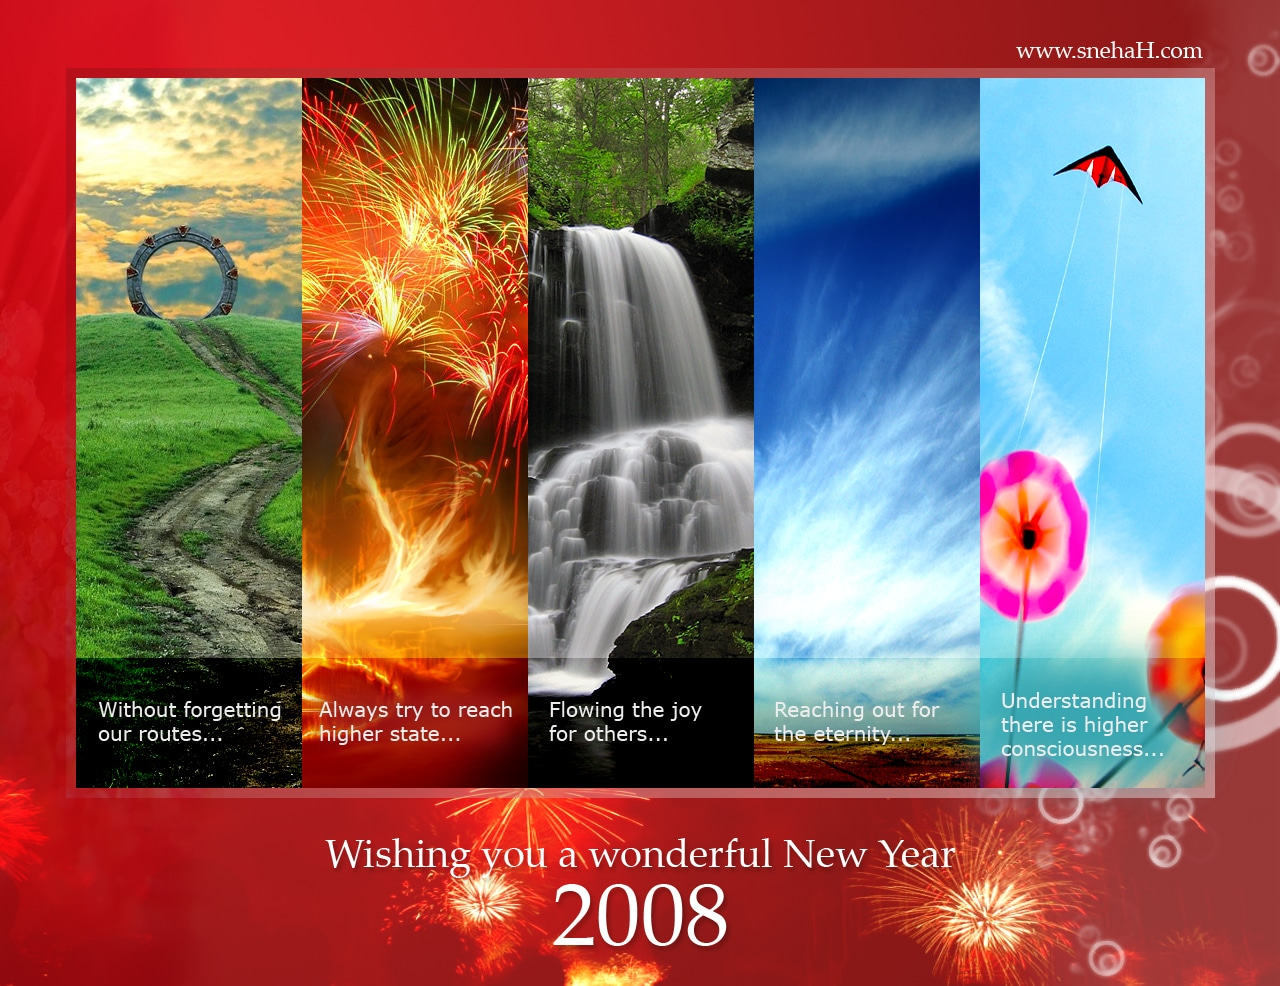 Happy New Year - Greetings - snehaH.com and WittySparks.com